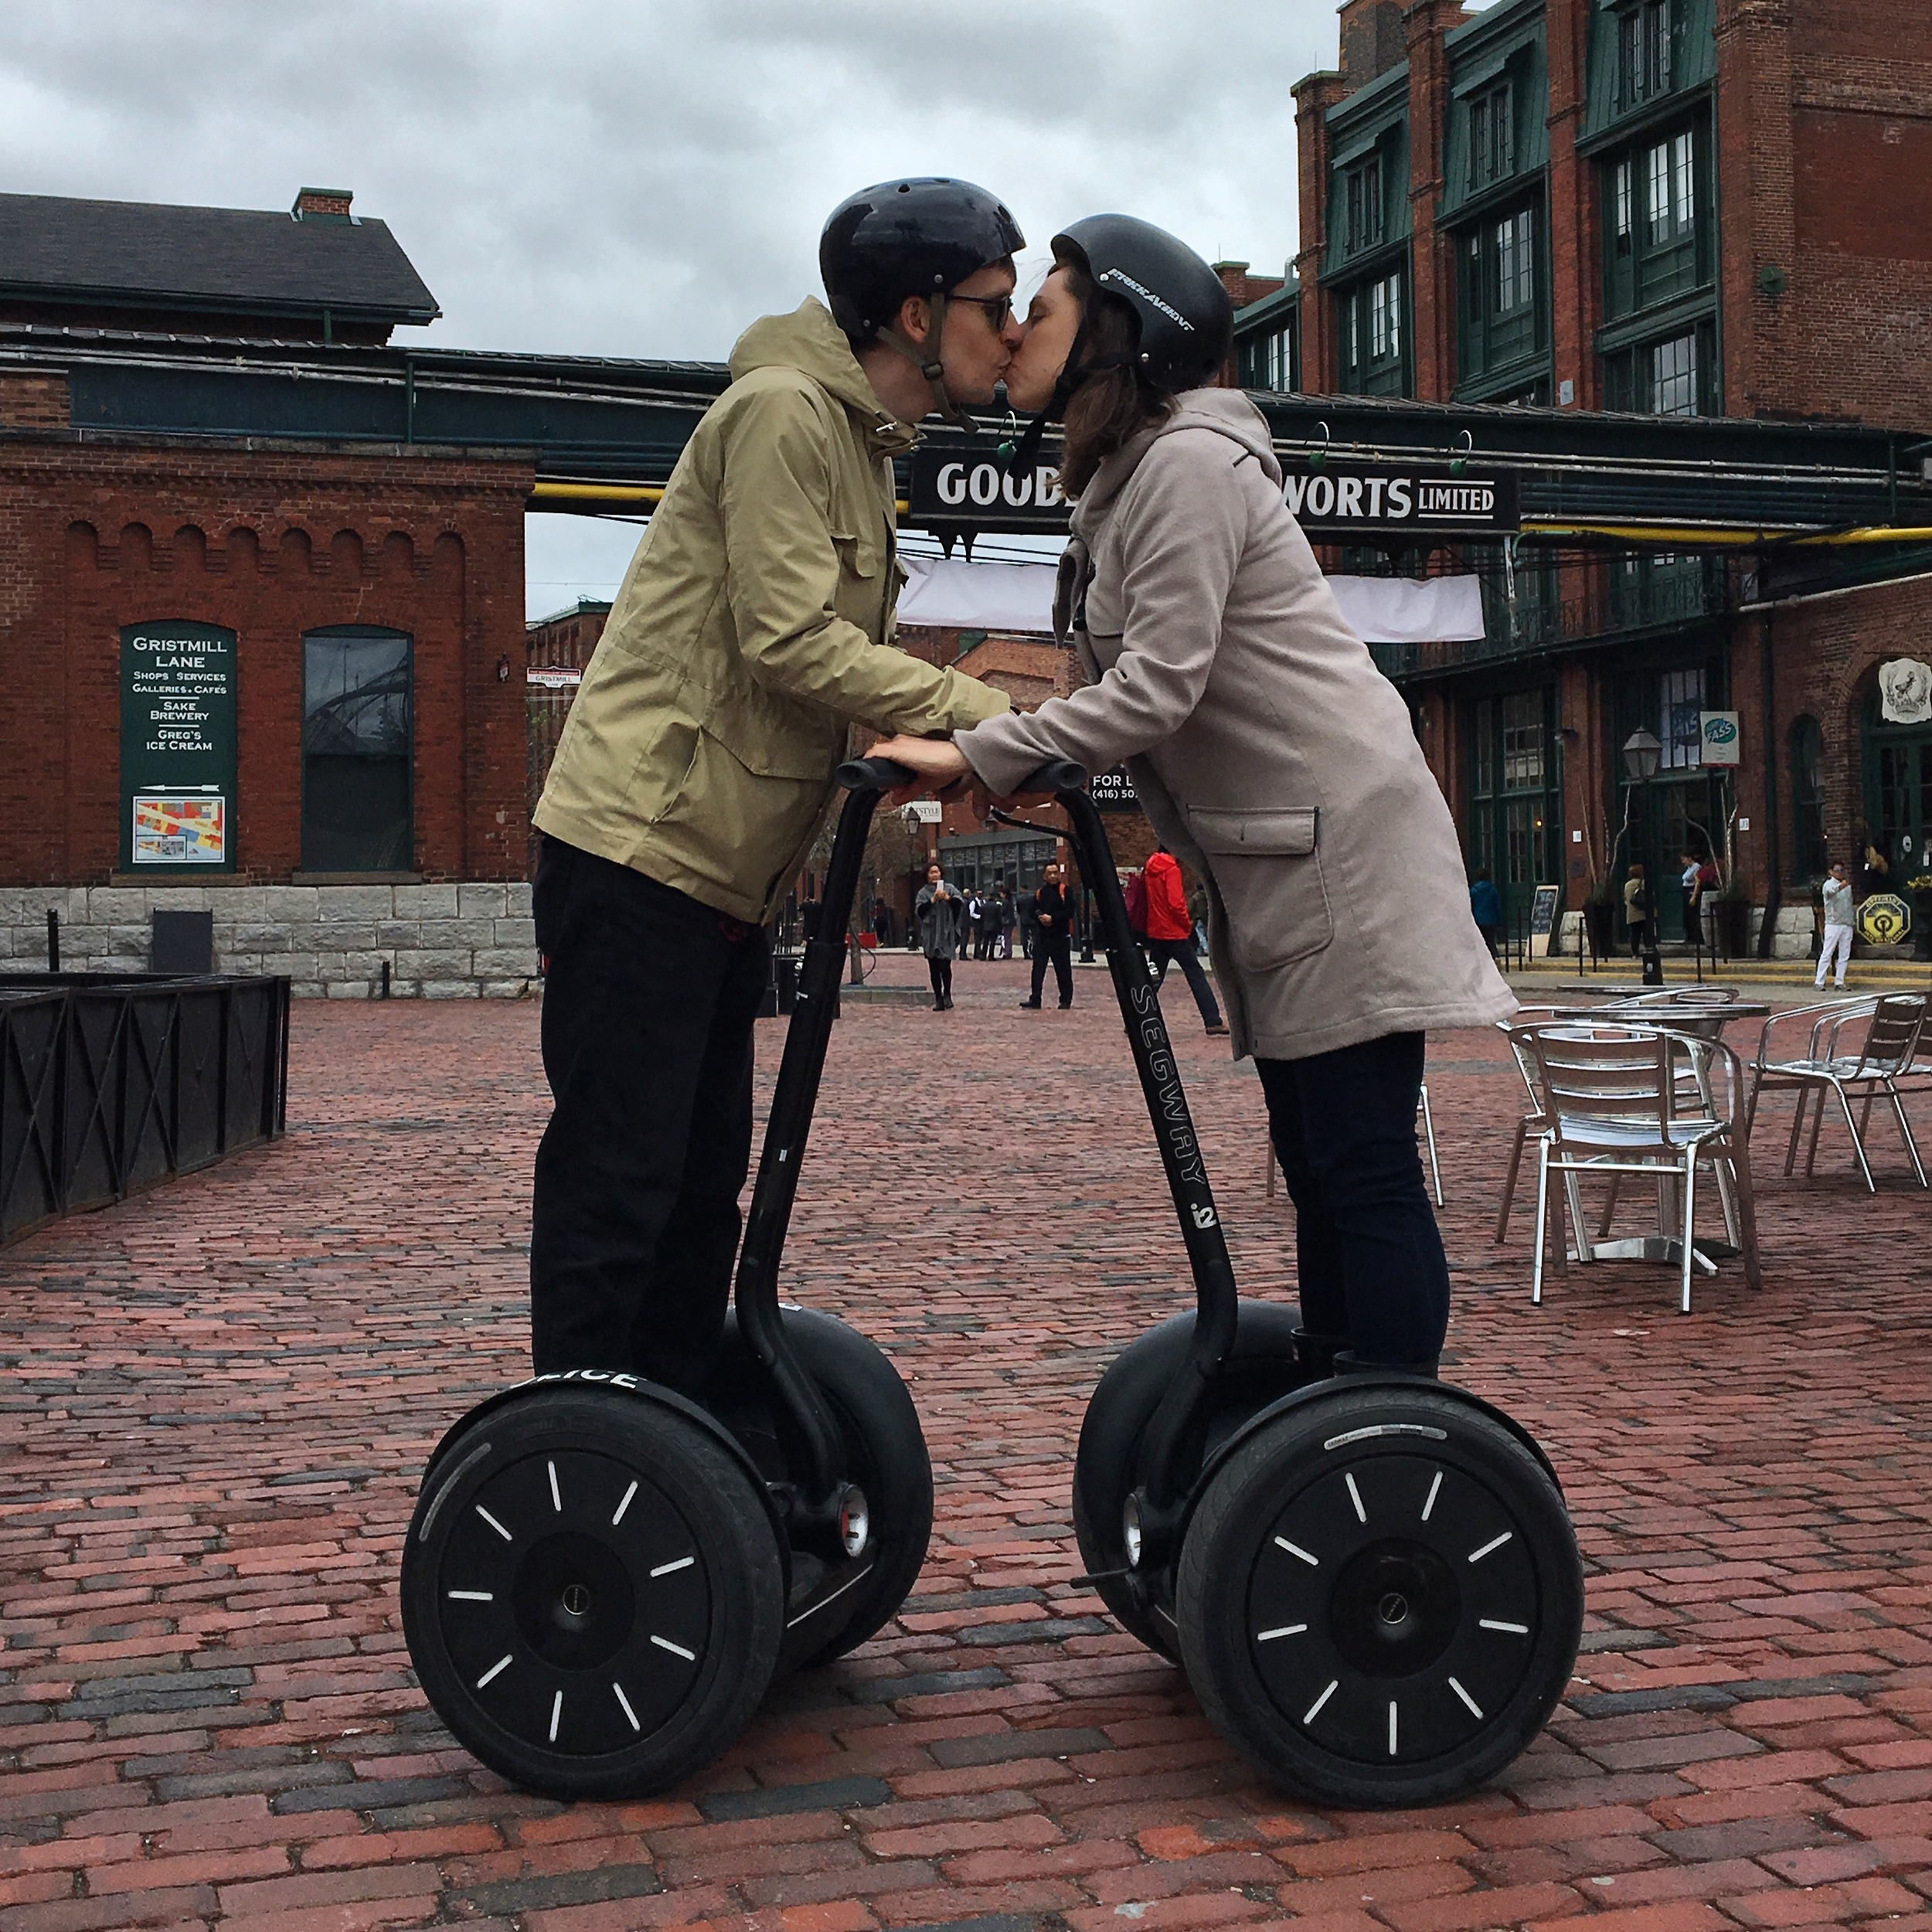 Didn't take a photo of us shopping for our registry, so here's one of us on a segway instead.